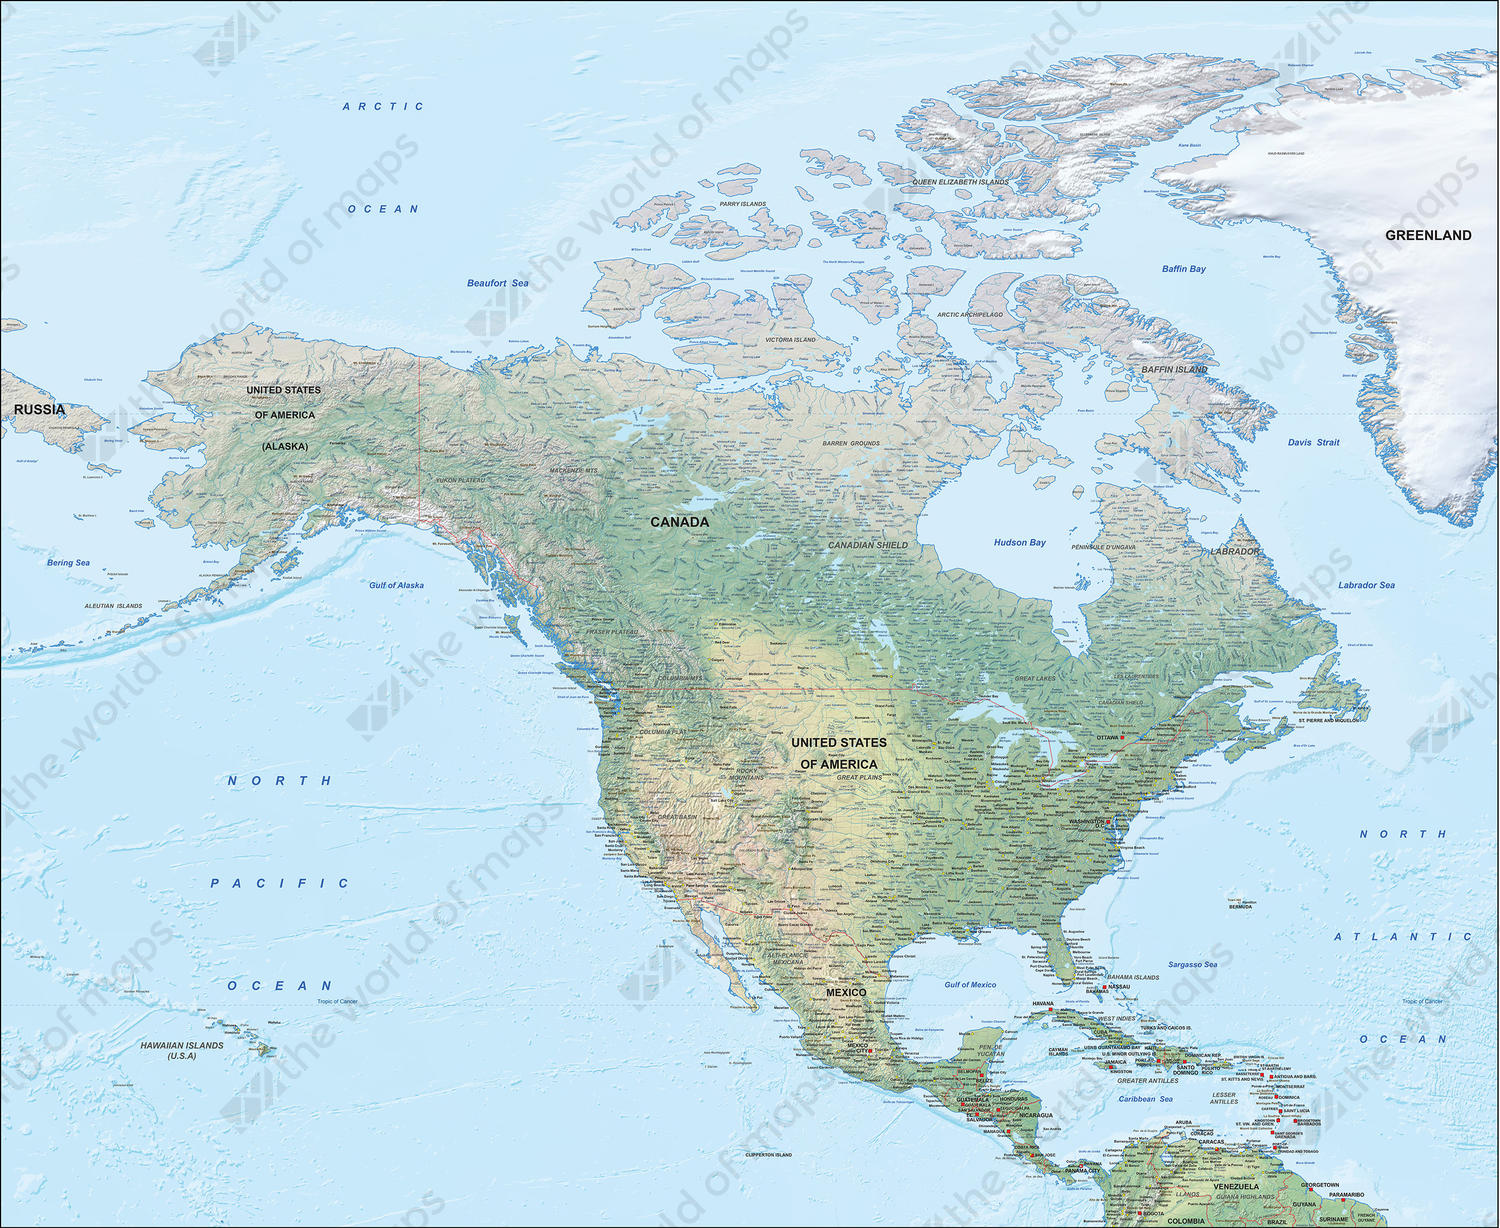 Digital Physical Map of North America 1285 | The World of ...